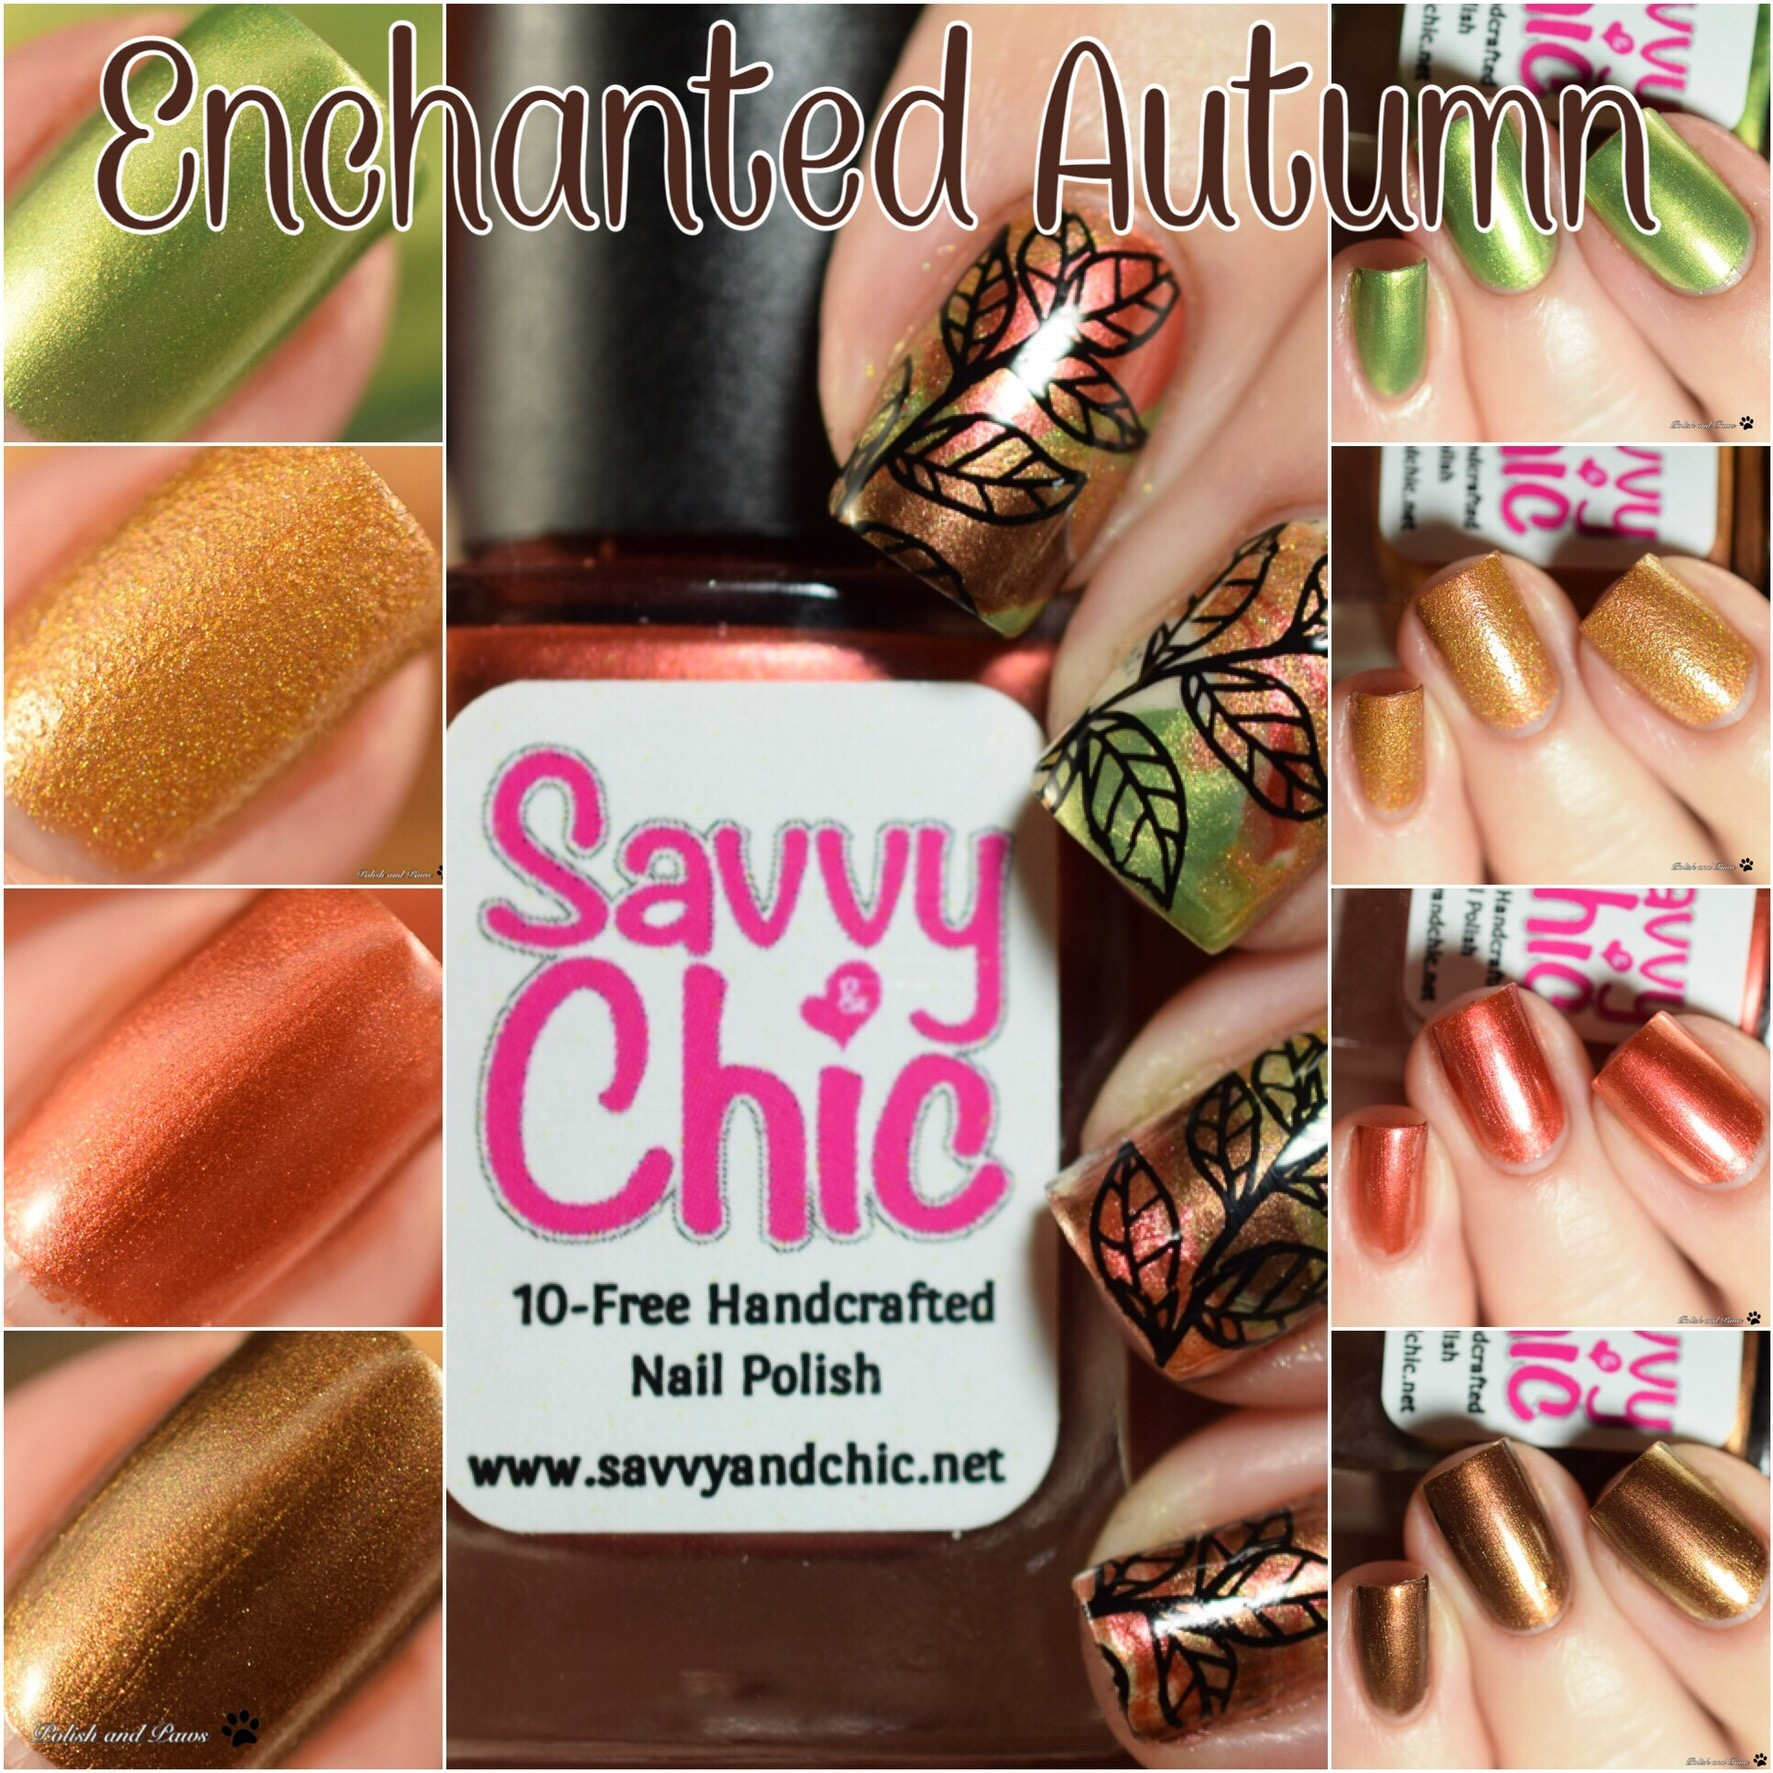 Savvy & Chic Lacquer Enchanted Autumn Collection